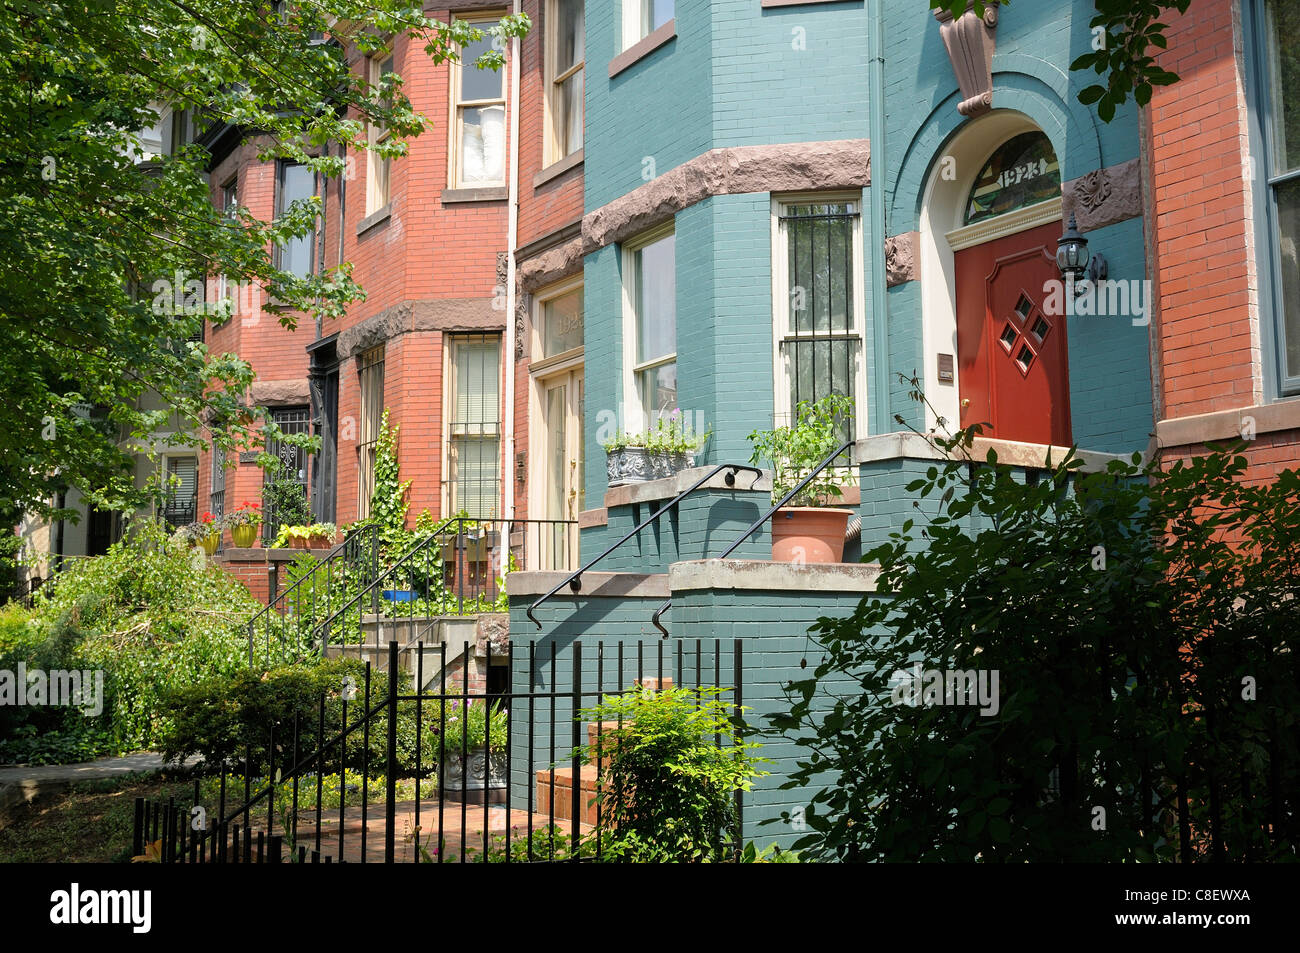 Houses, near Du Pont Circle, Washington D.C., District of Columbia, USA, United States, America, colourful - Stock Image